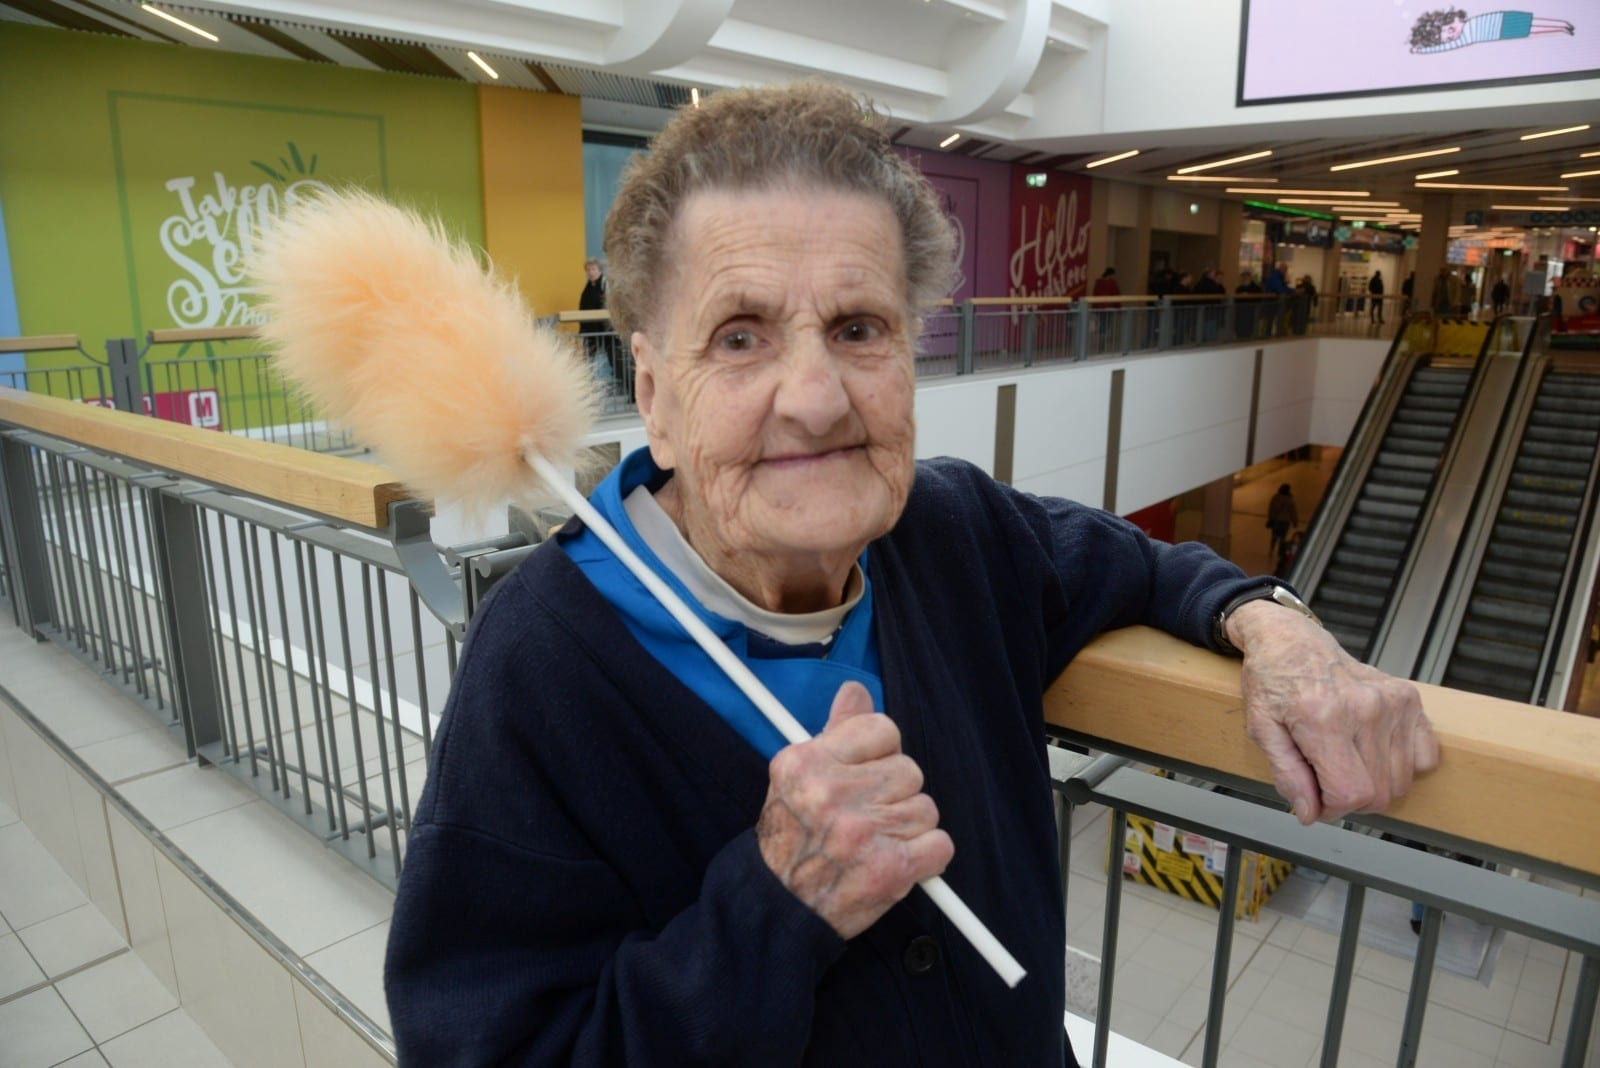 One Of Britain's Oldest Cleaners Has Returned To Work, Two Months After Breaking Her Hip In Nasty Fall